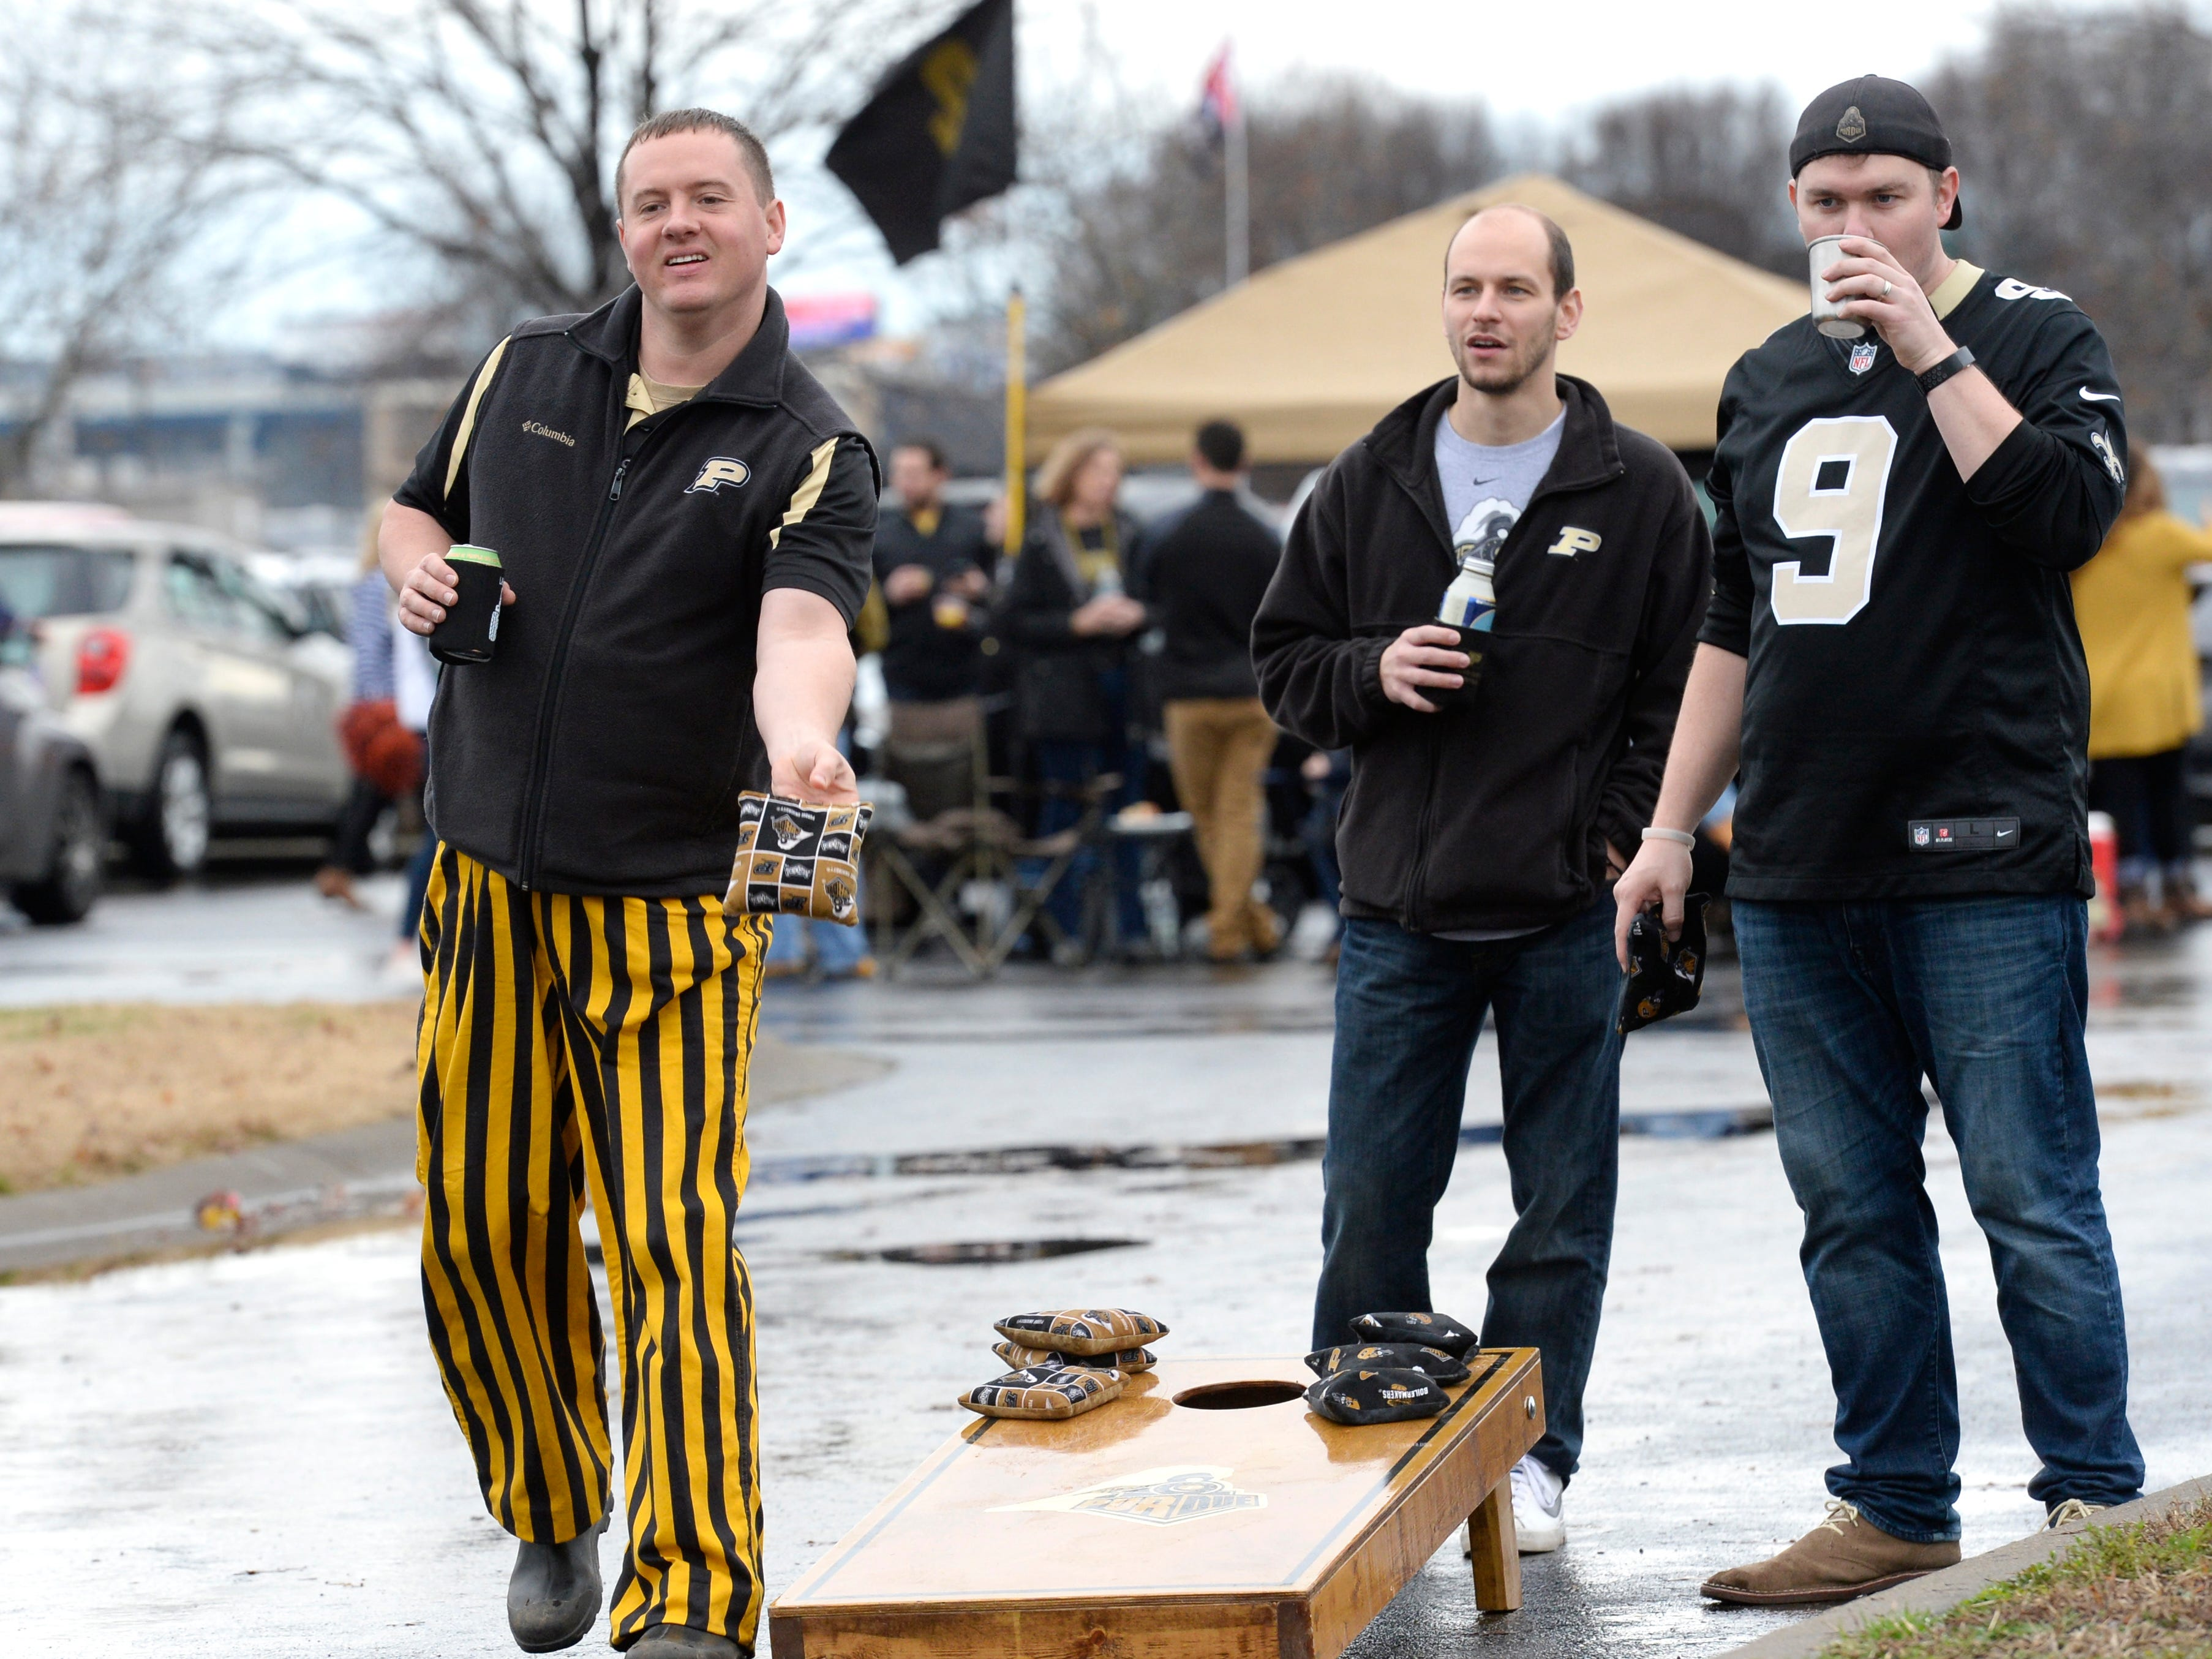 Purdue fans play corn hole before the start of the Music City Bowl NCAA college football game Friday, Dec. 28, 2018, at Nissan Stadium in Nashville, Tenn.